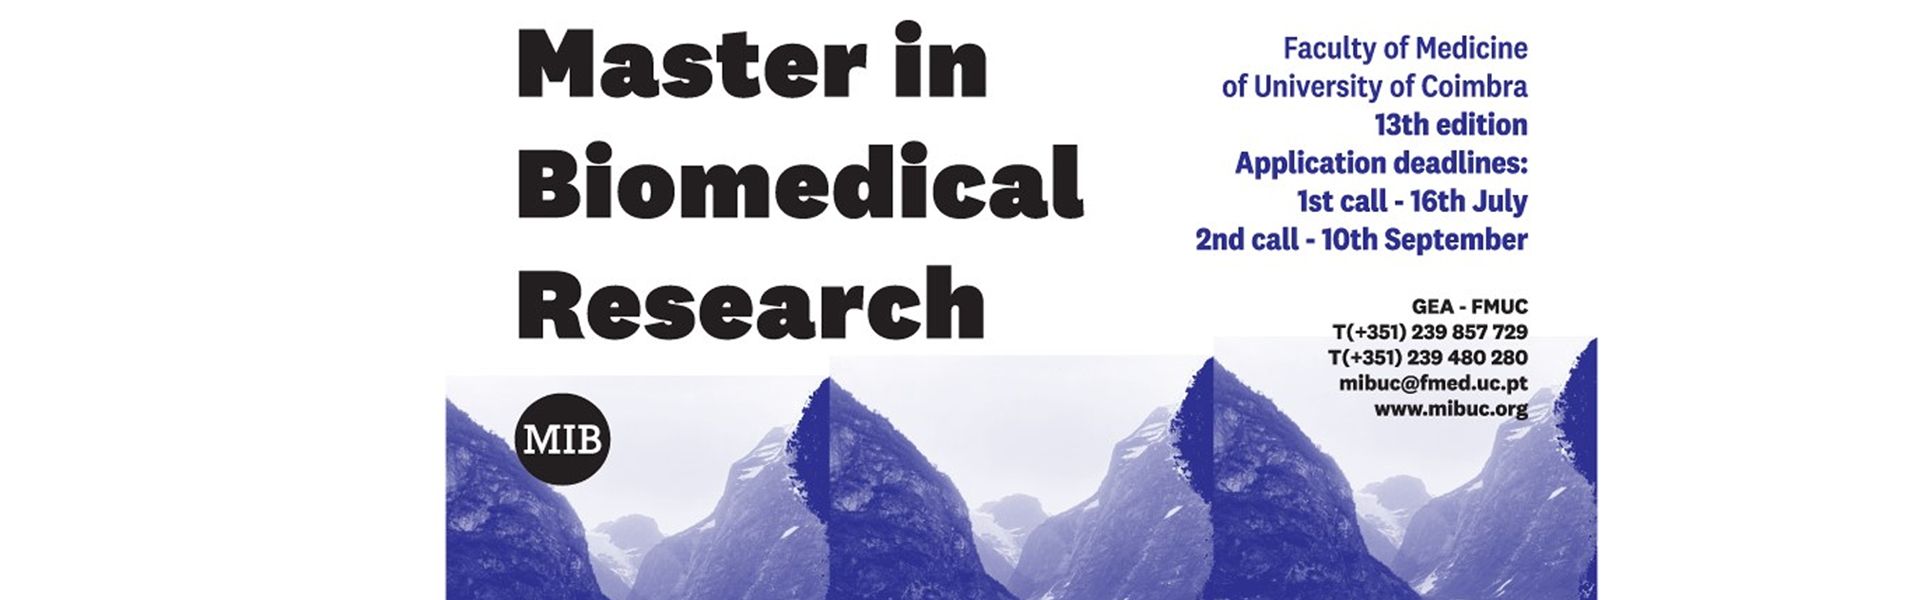 XI Edition of the Master in Biomedical Research